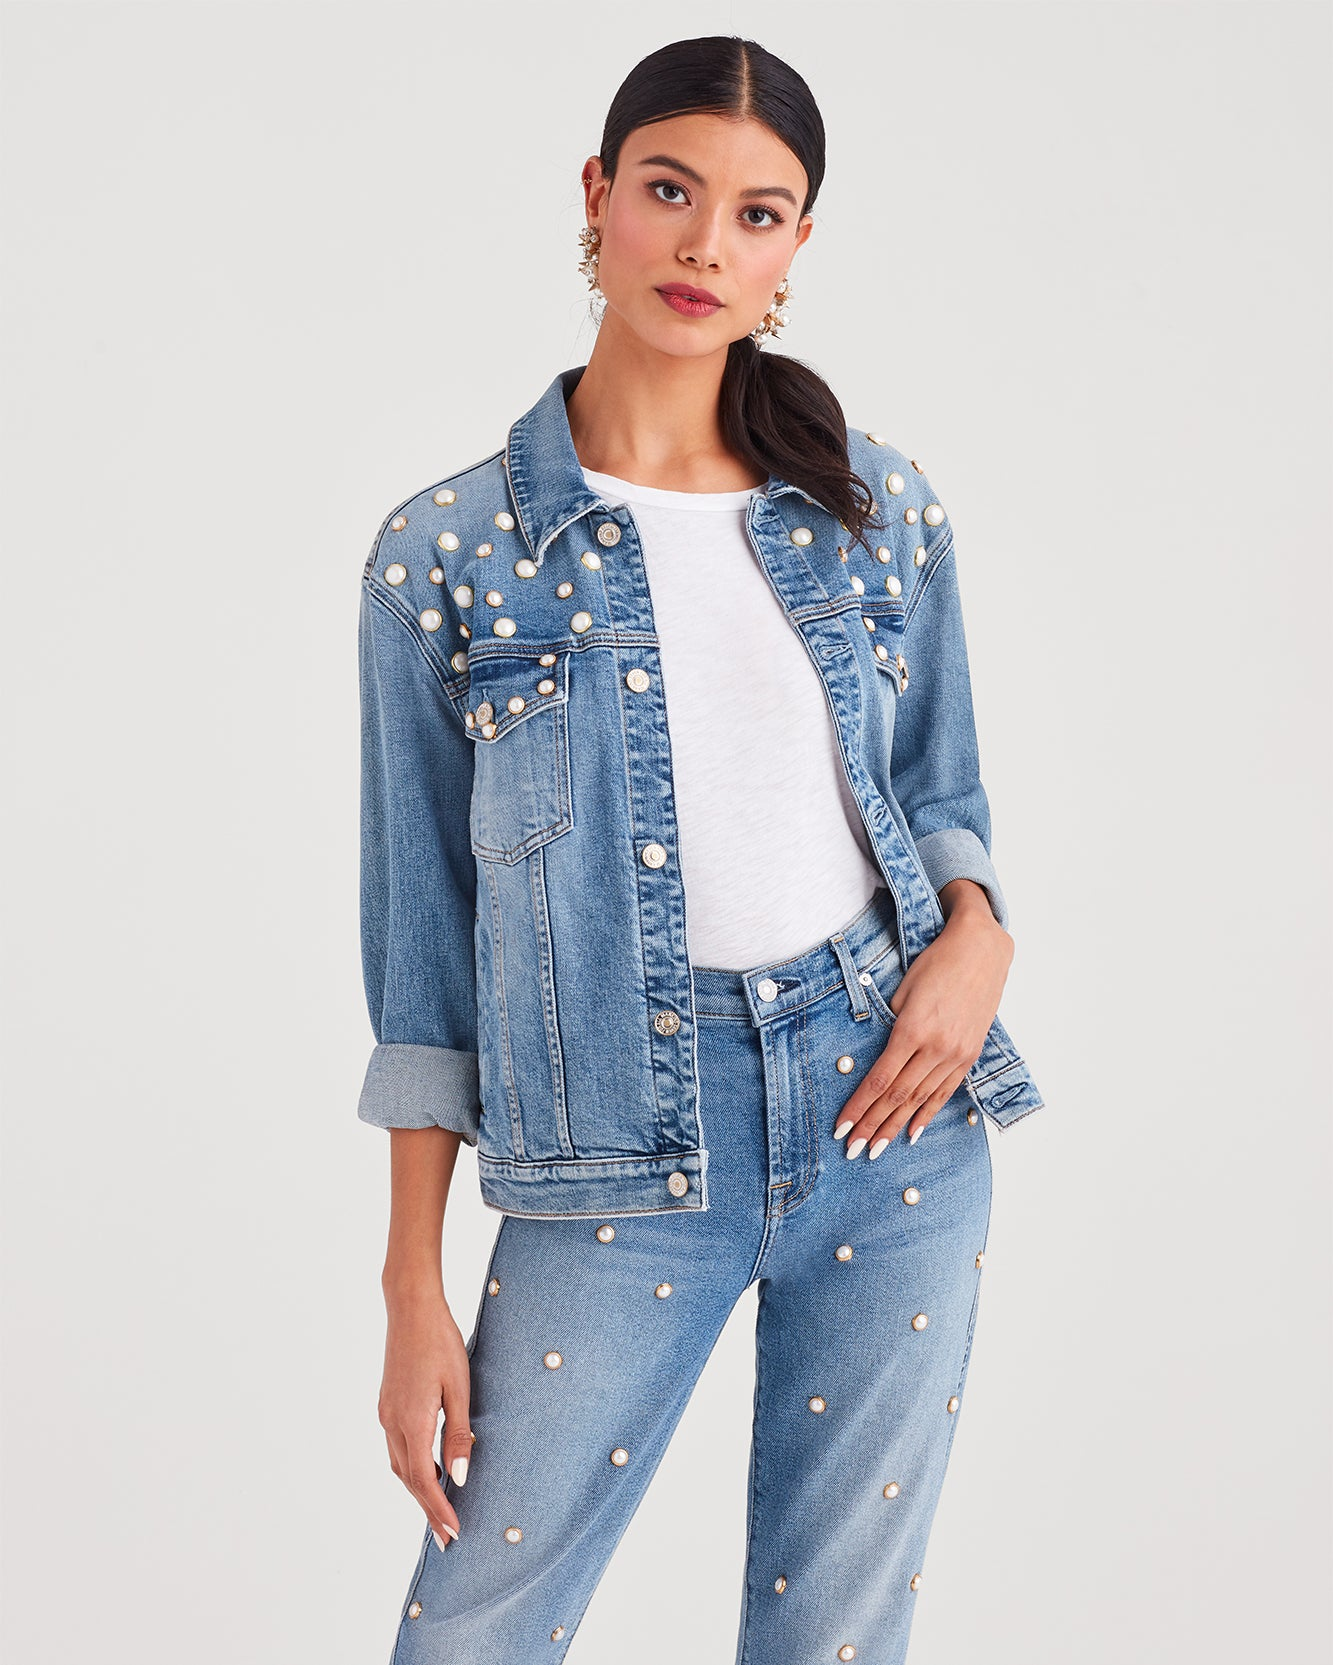 Image of Boyfriend Jacket with All Over Pearl Embellishment in Flora